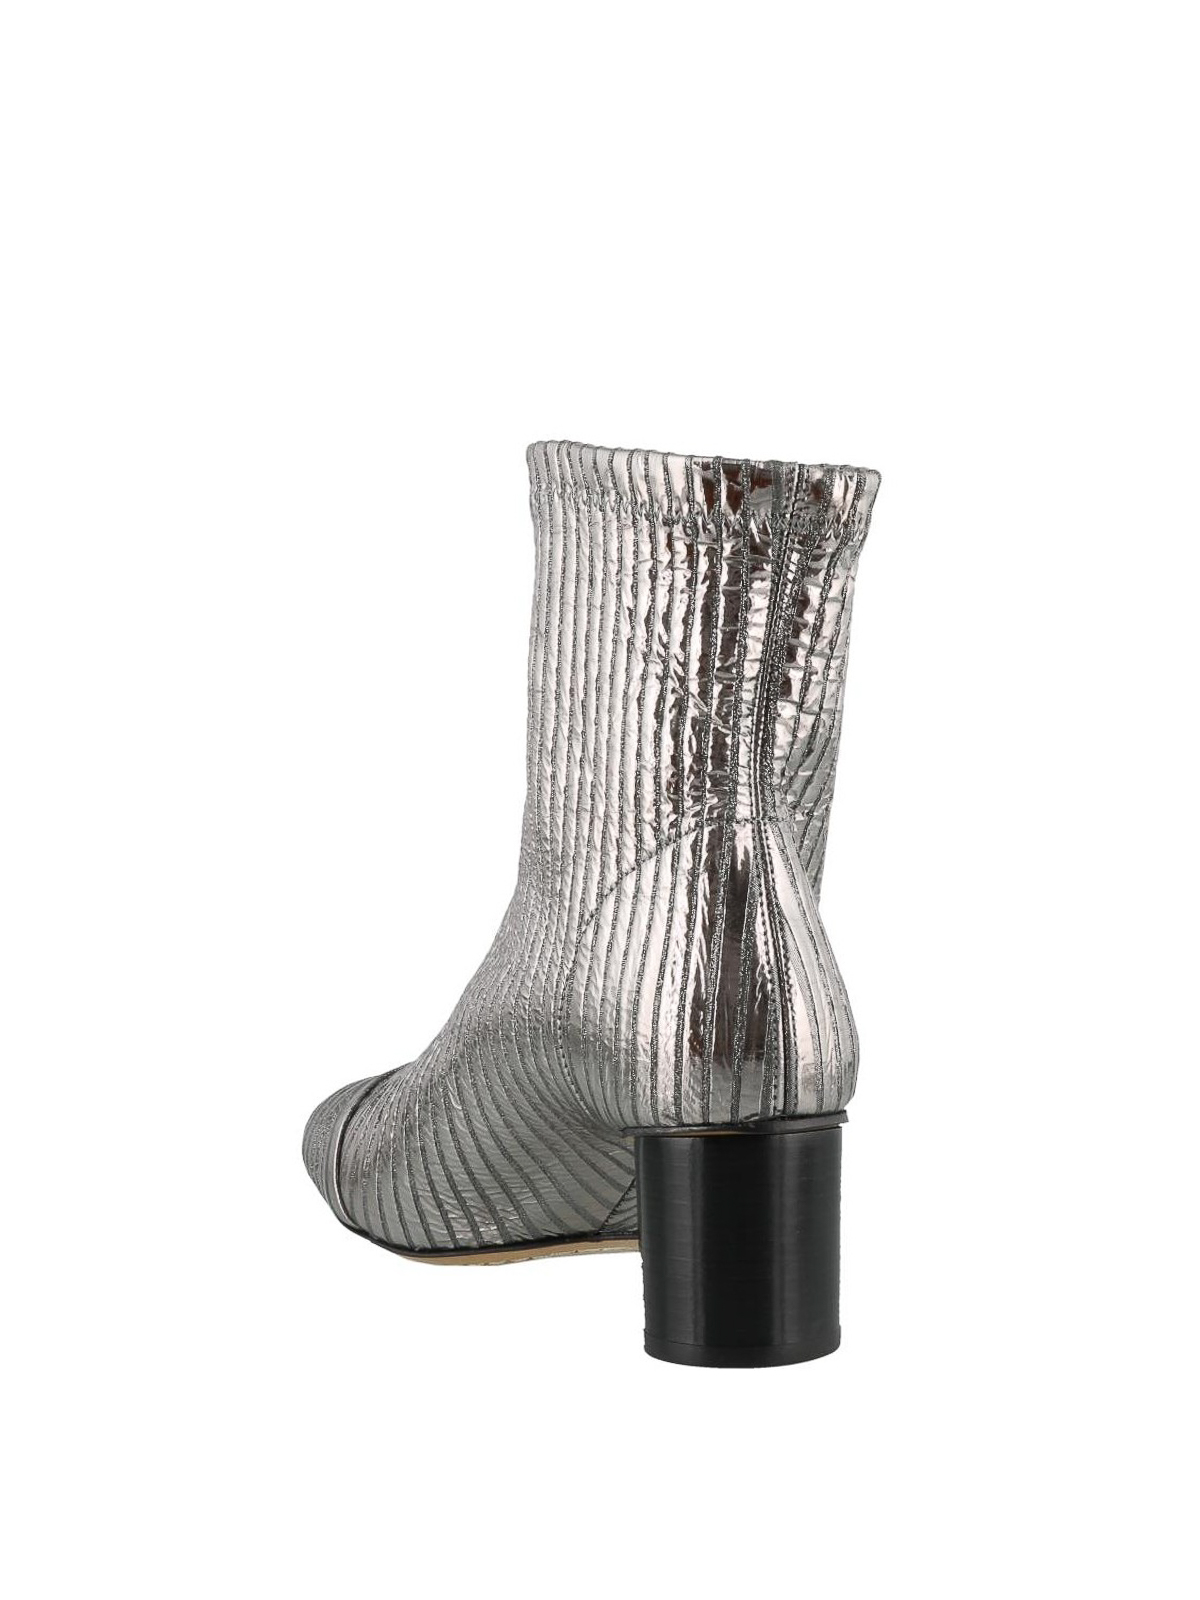 28a65bcced1 Isabel Marant - Metallic leather Datsy ankle boots - ankle boots ...